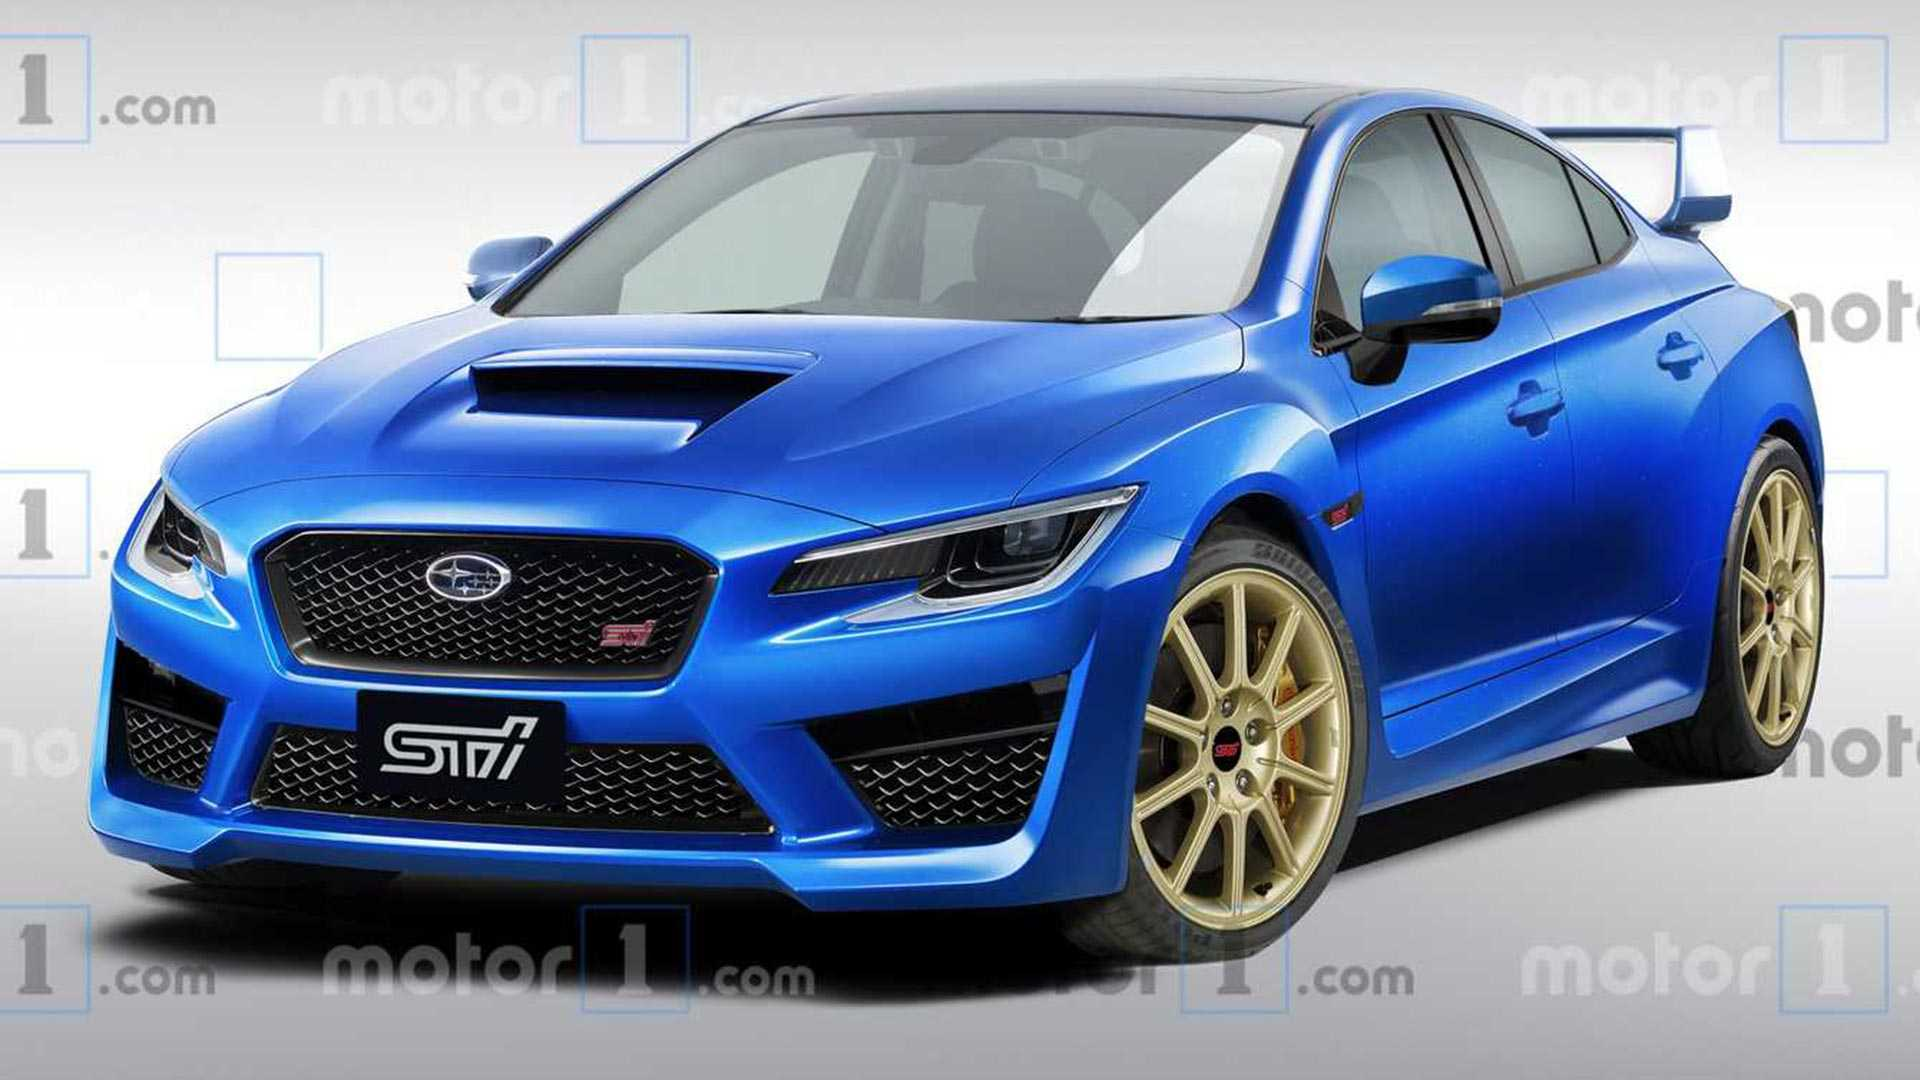 81 All New 2020 Subaru Brz Sti Turbo Release Date And Concept